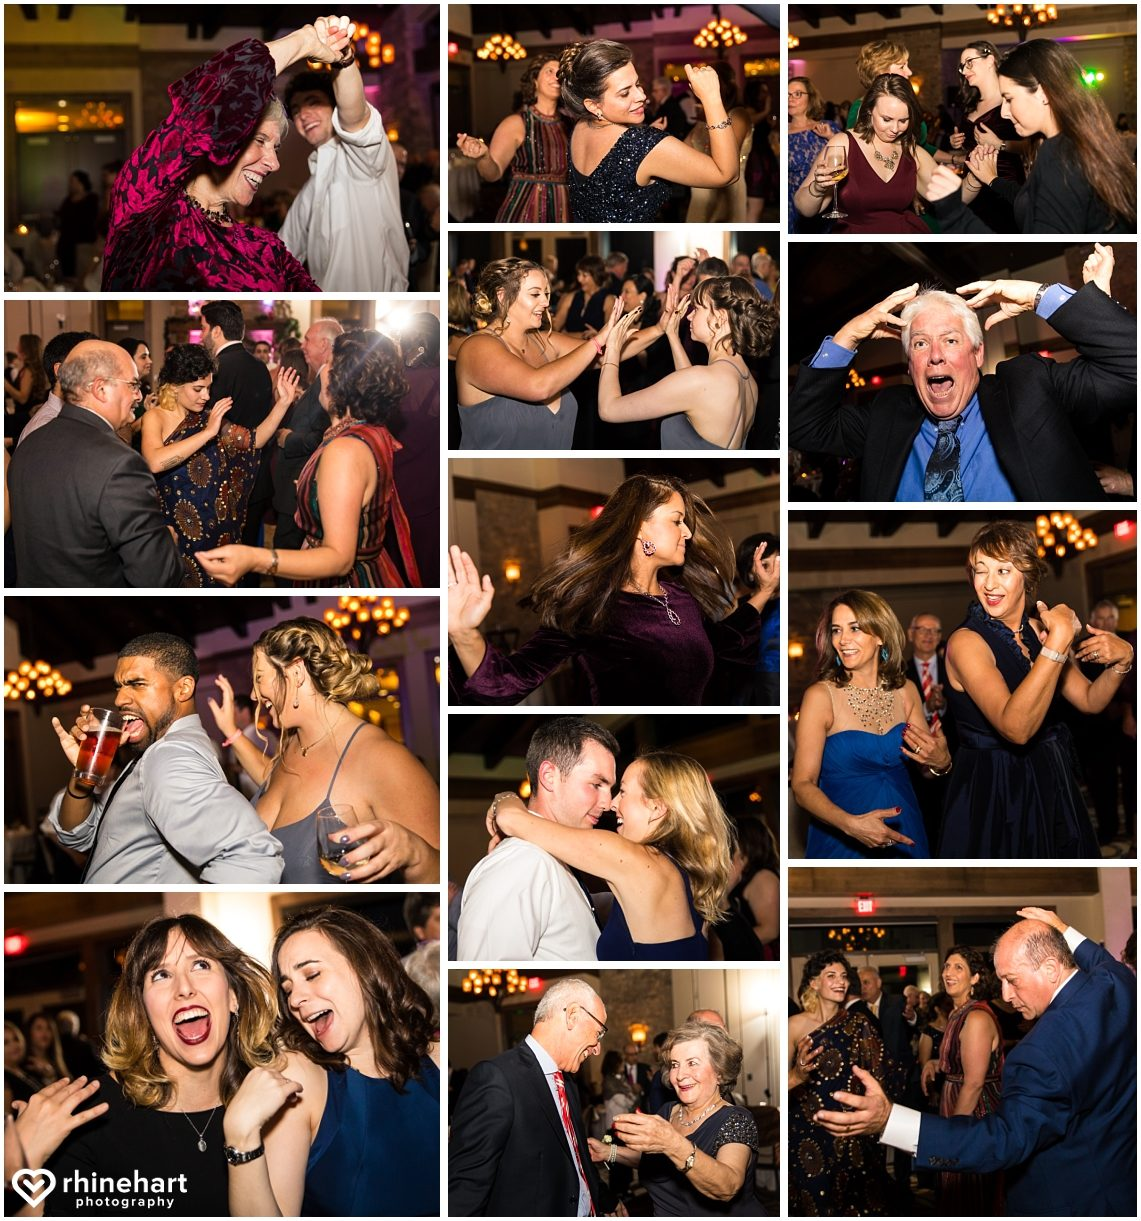 liberty-mountain-resort-wedding-photographers-creative-best-colorful-central-pa-49